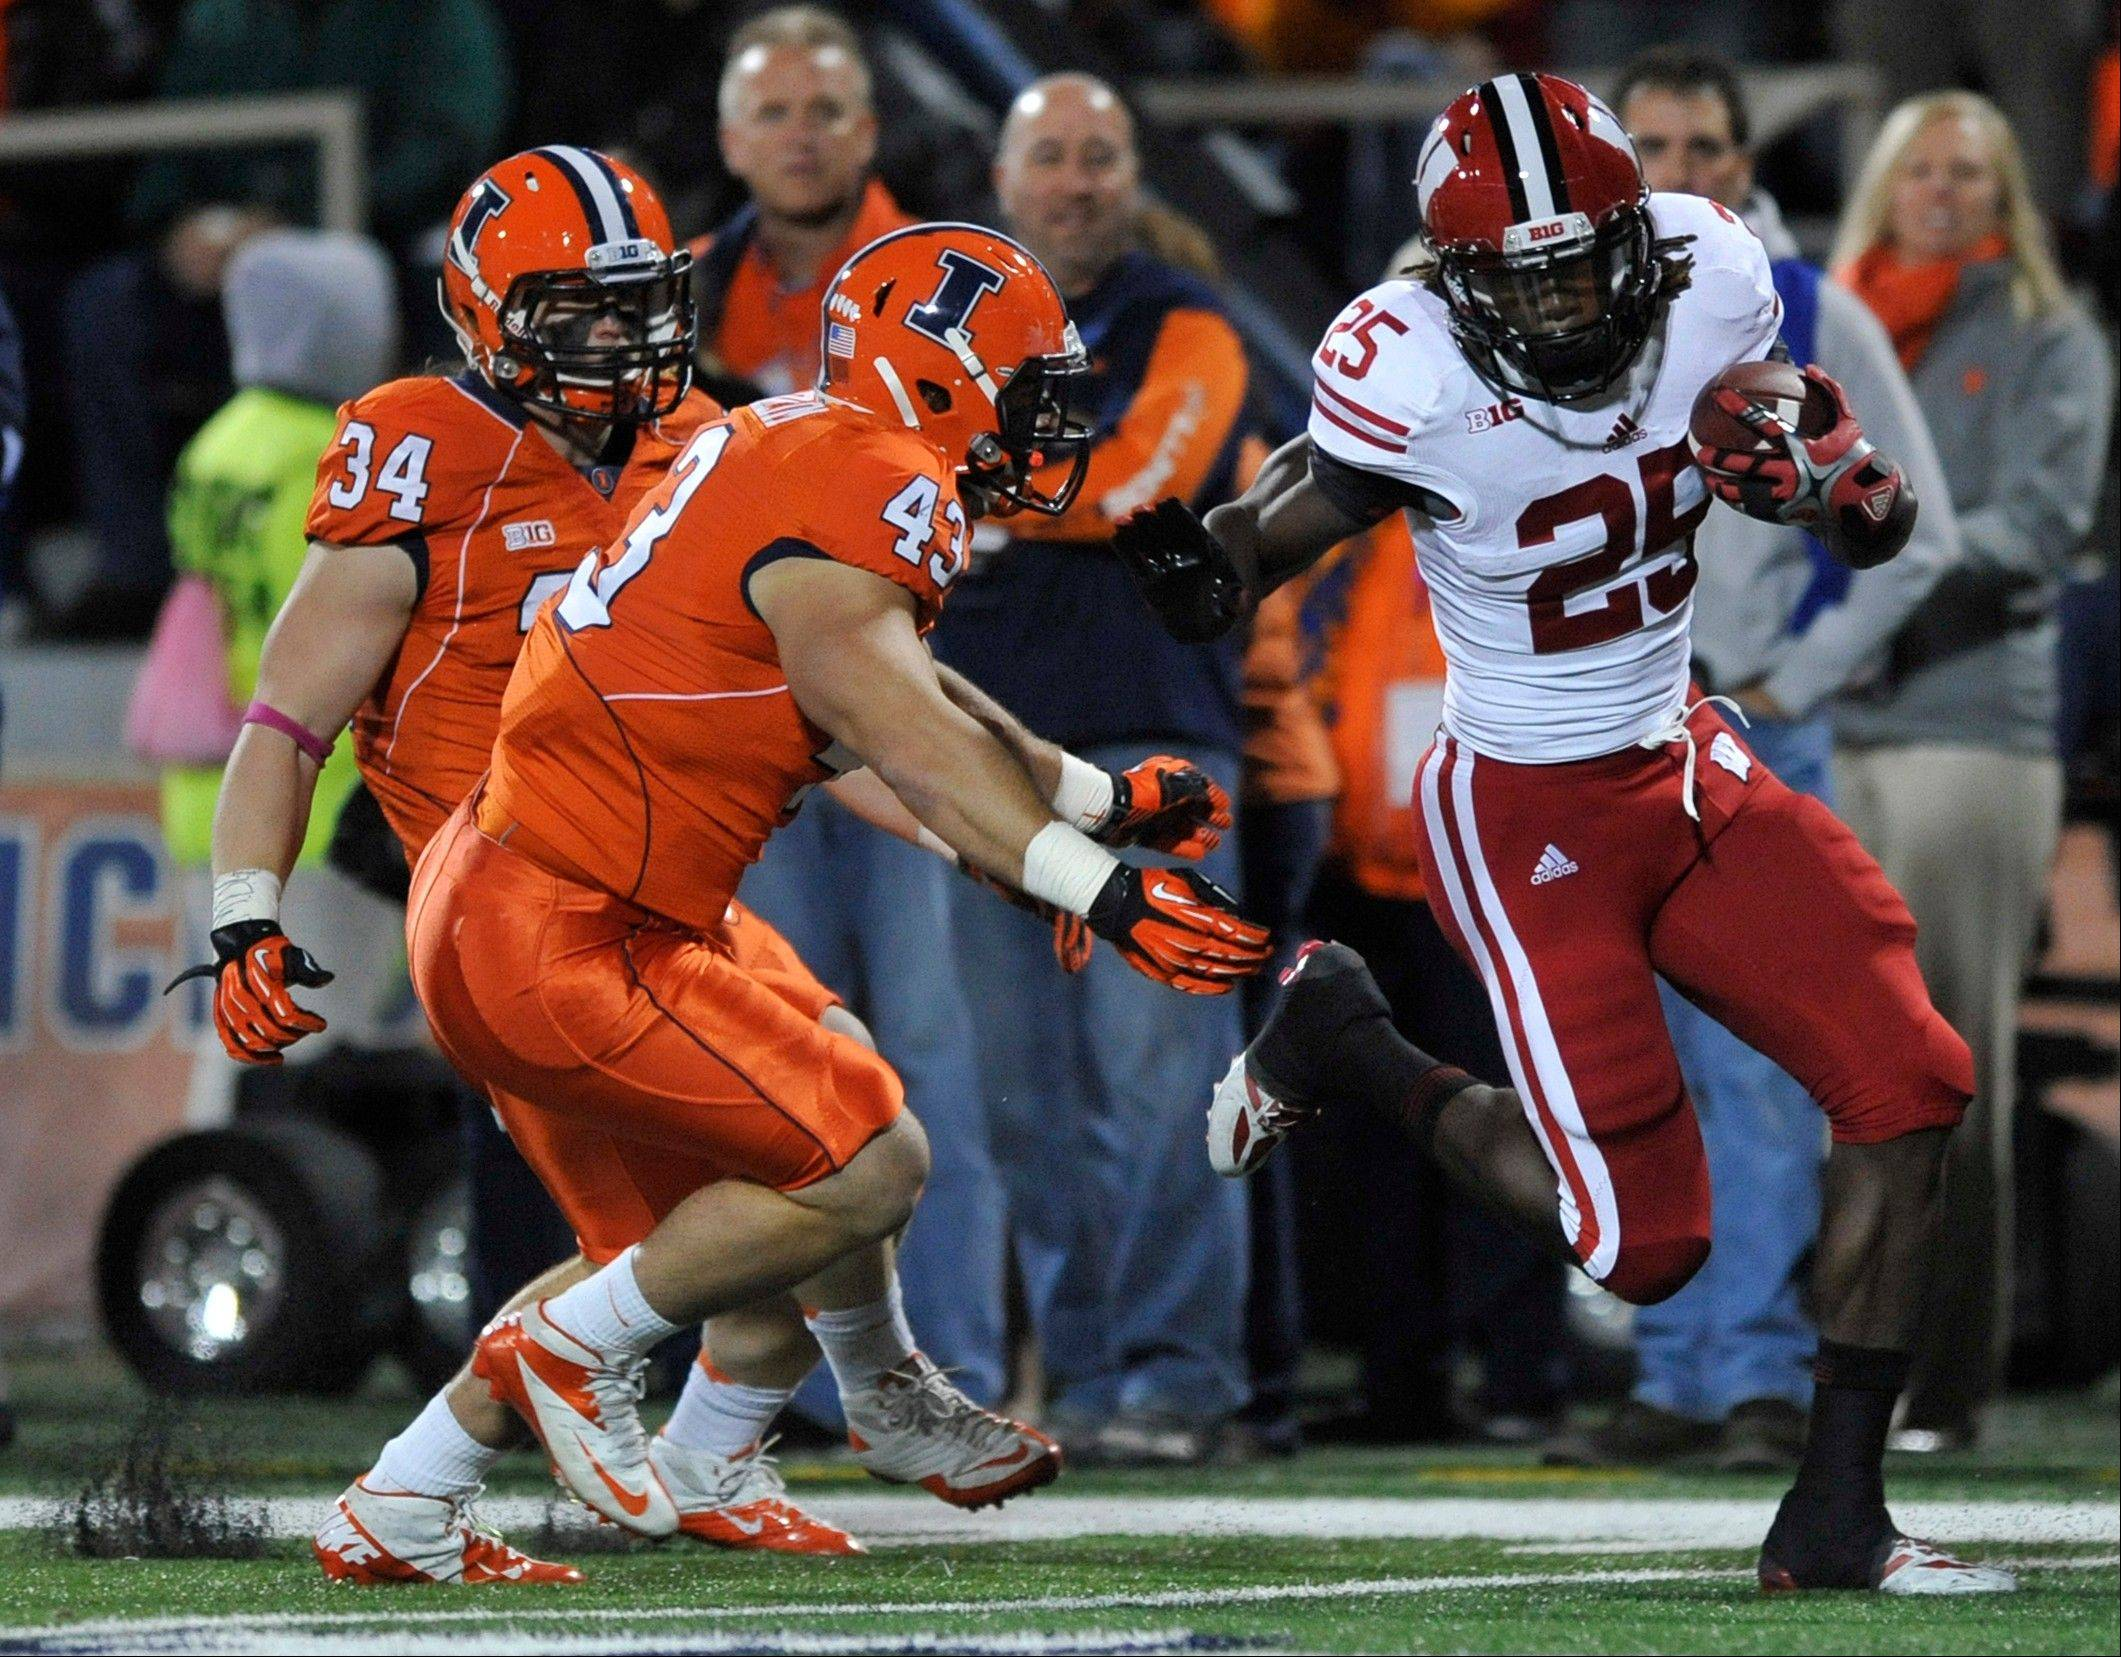 Wisconsin running back Melvin Gordon rushes against Mason Monheim (43), and Mike Svetina (34) during the first quarter of Illinois' 56-32 home loss on Saturday. The Illini gave up 289 rushing yards in the game.